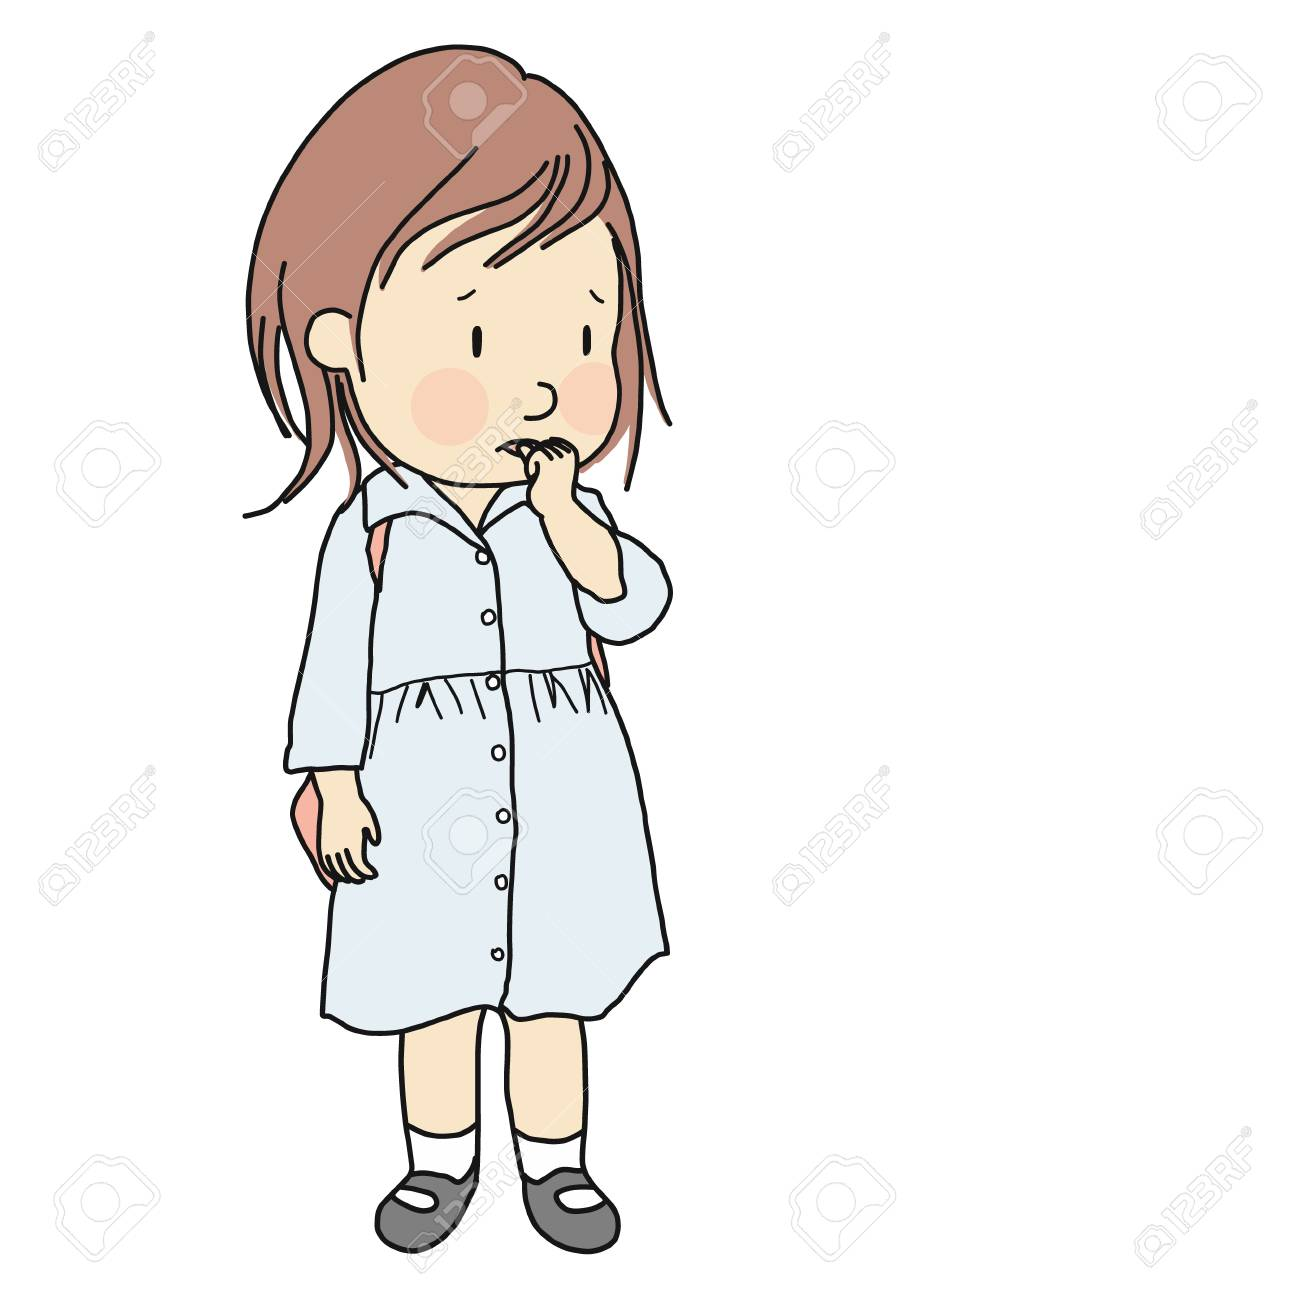 Vector illustration of little kid biting her nail to relieve anxiety, loneliness, stress. Early childhood development, nervous habit, emotional and behavior problem concept. Cartoon character design. - 107037492